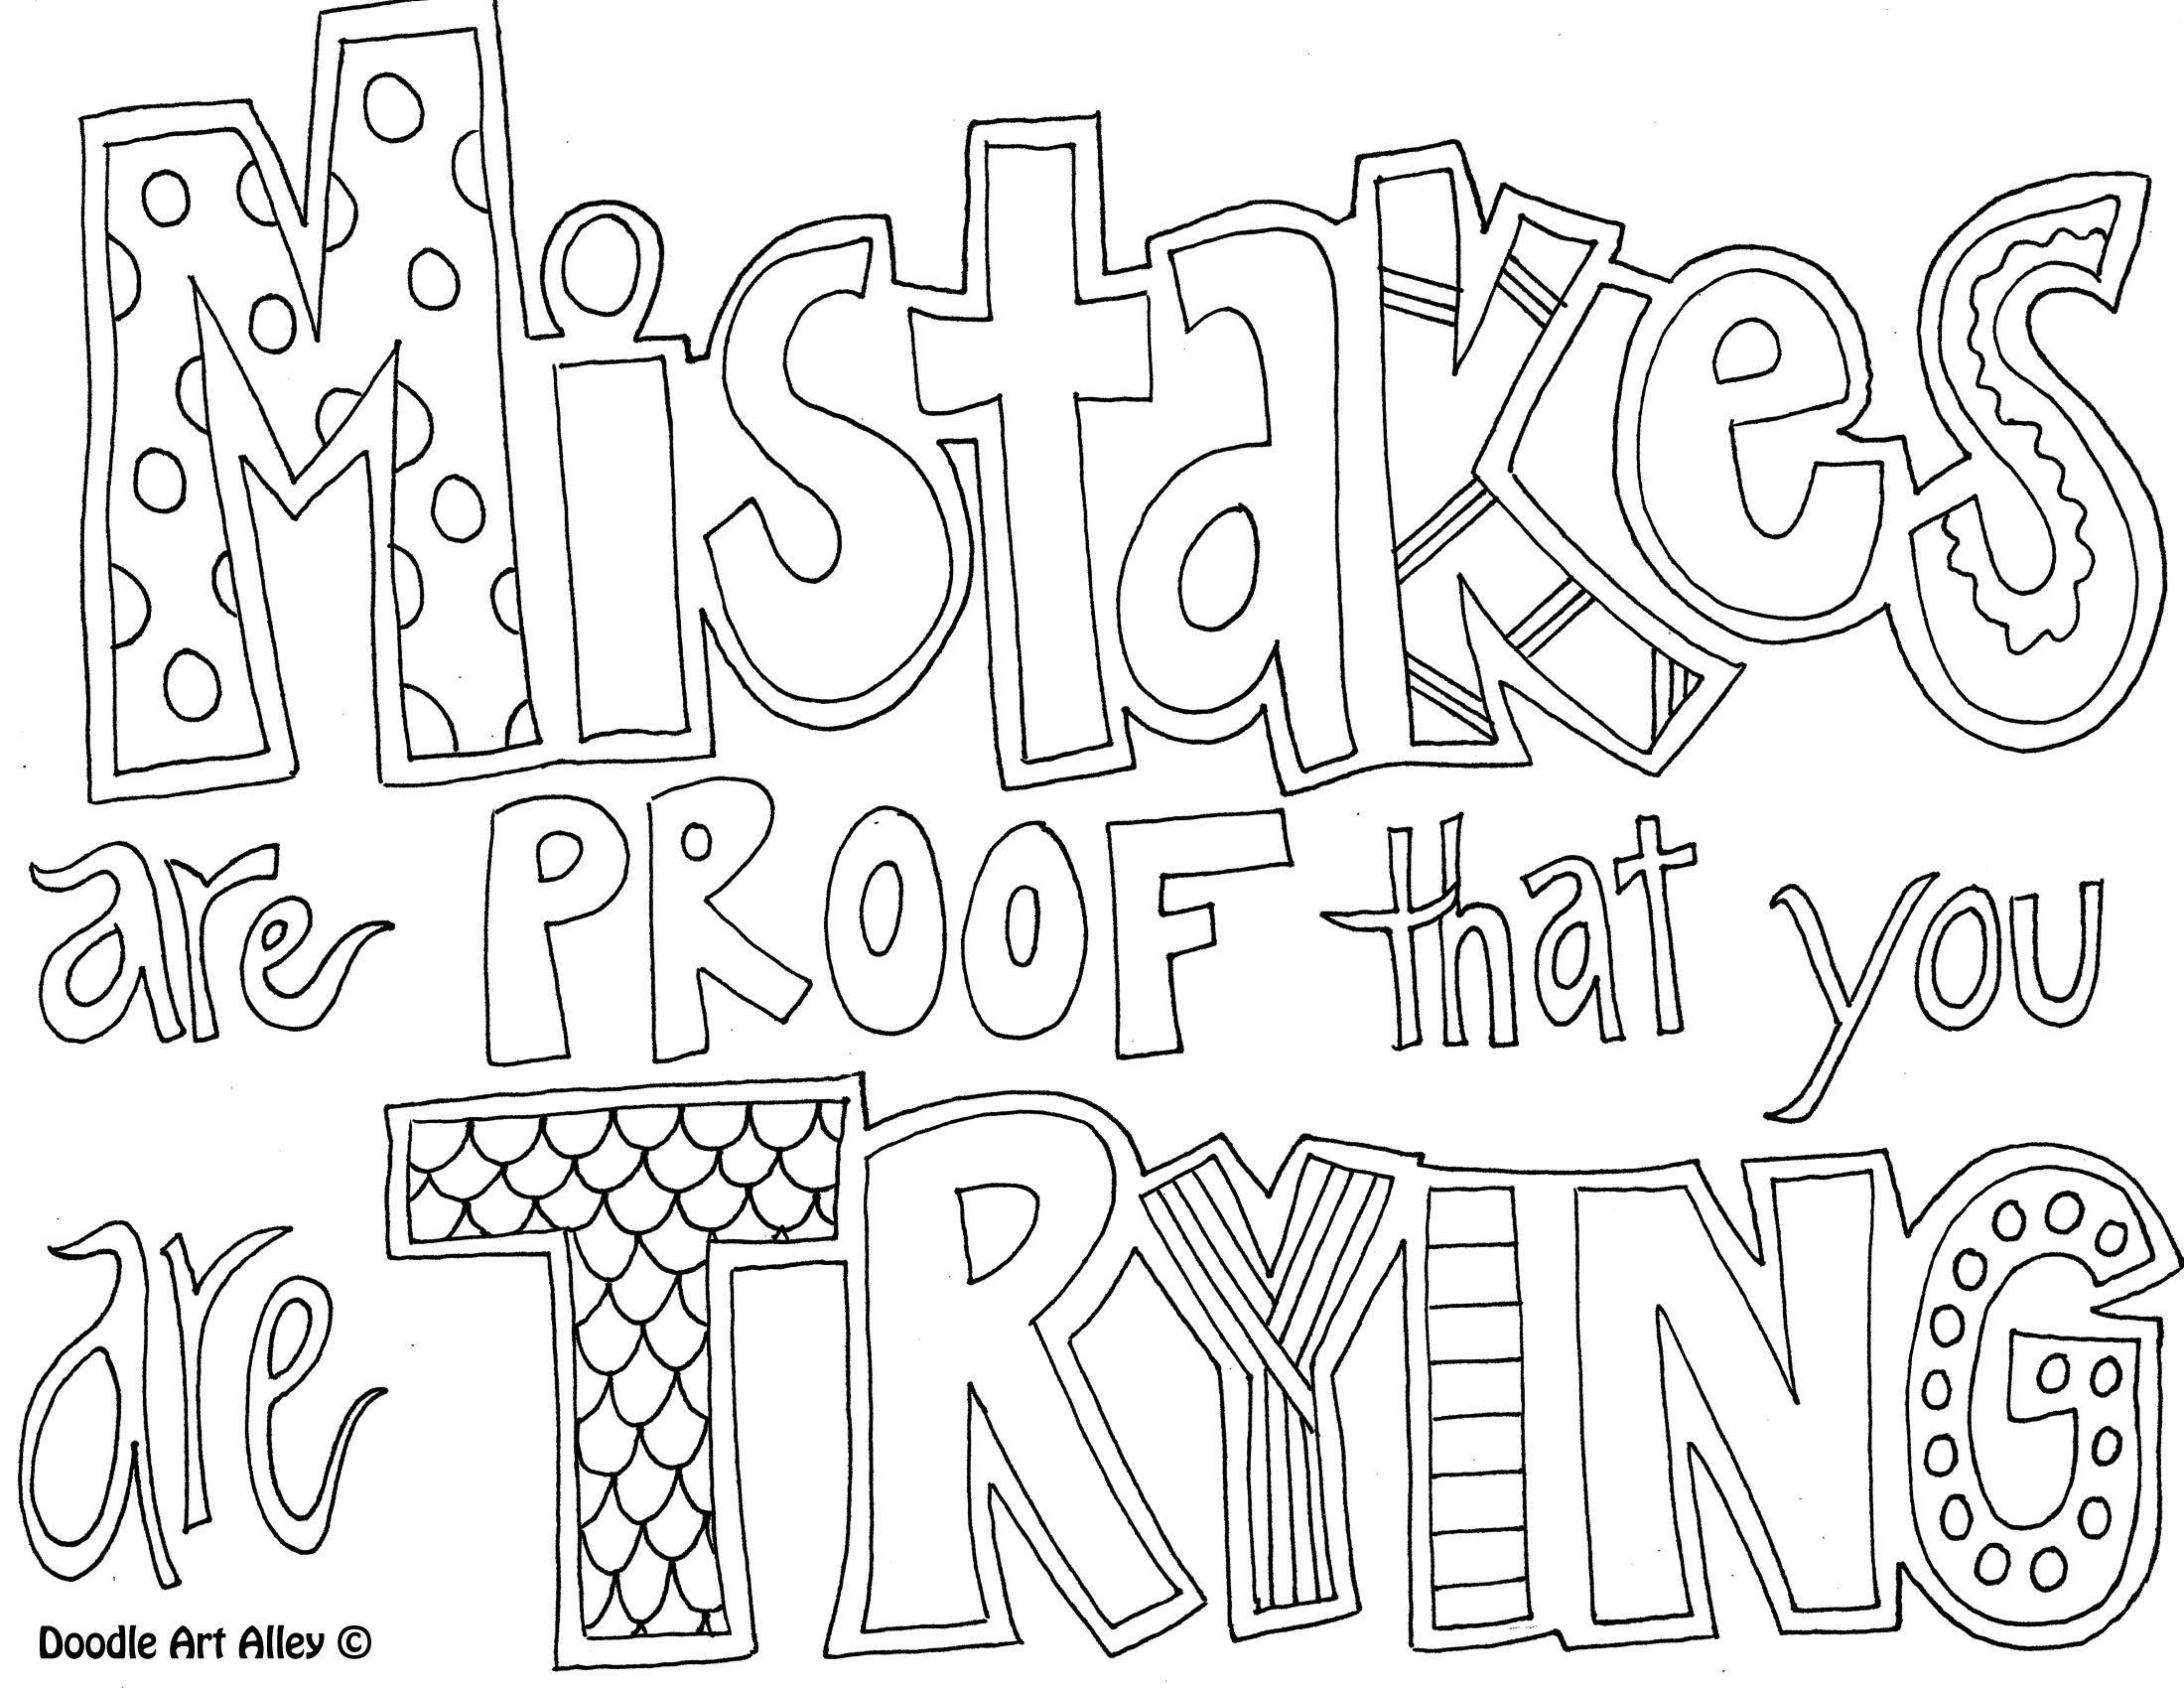 Mistakes are proof that you are trying doodles pinterest art